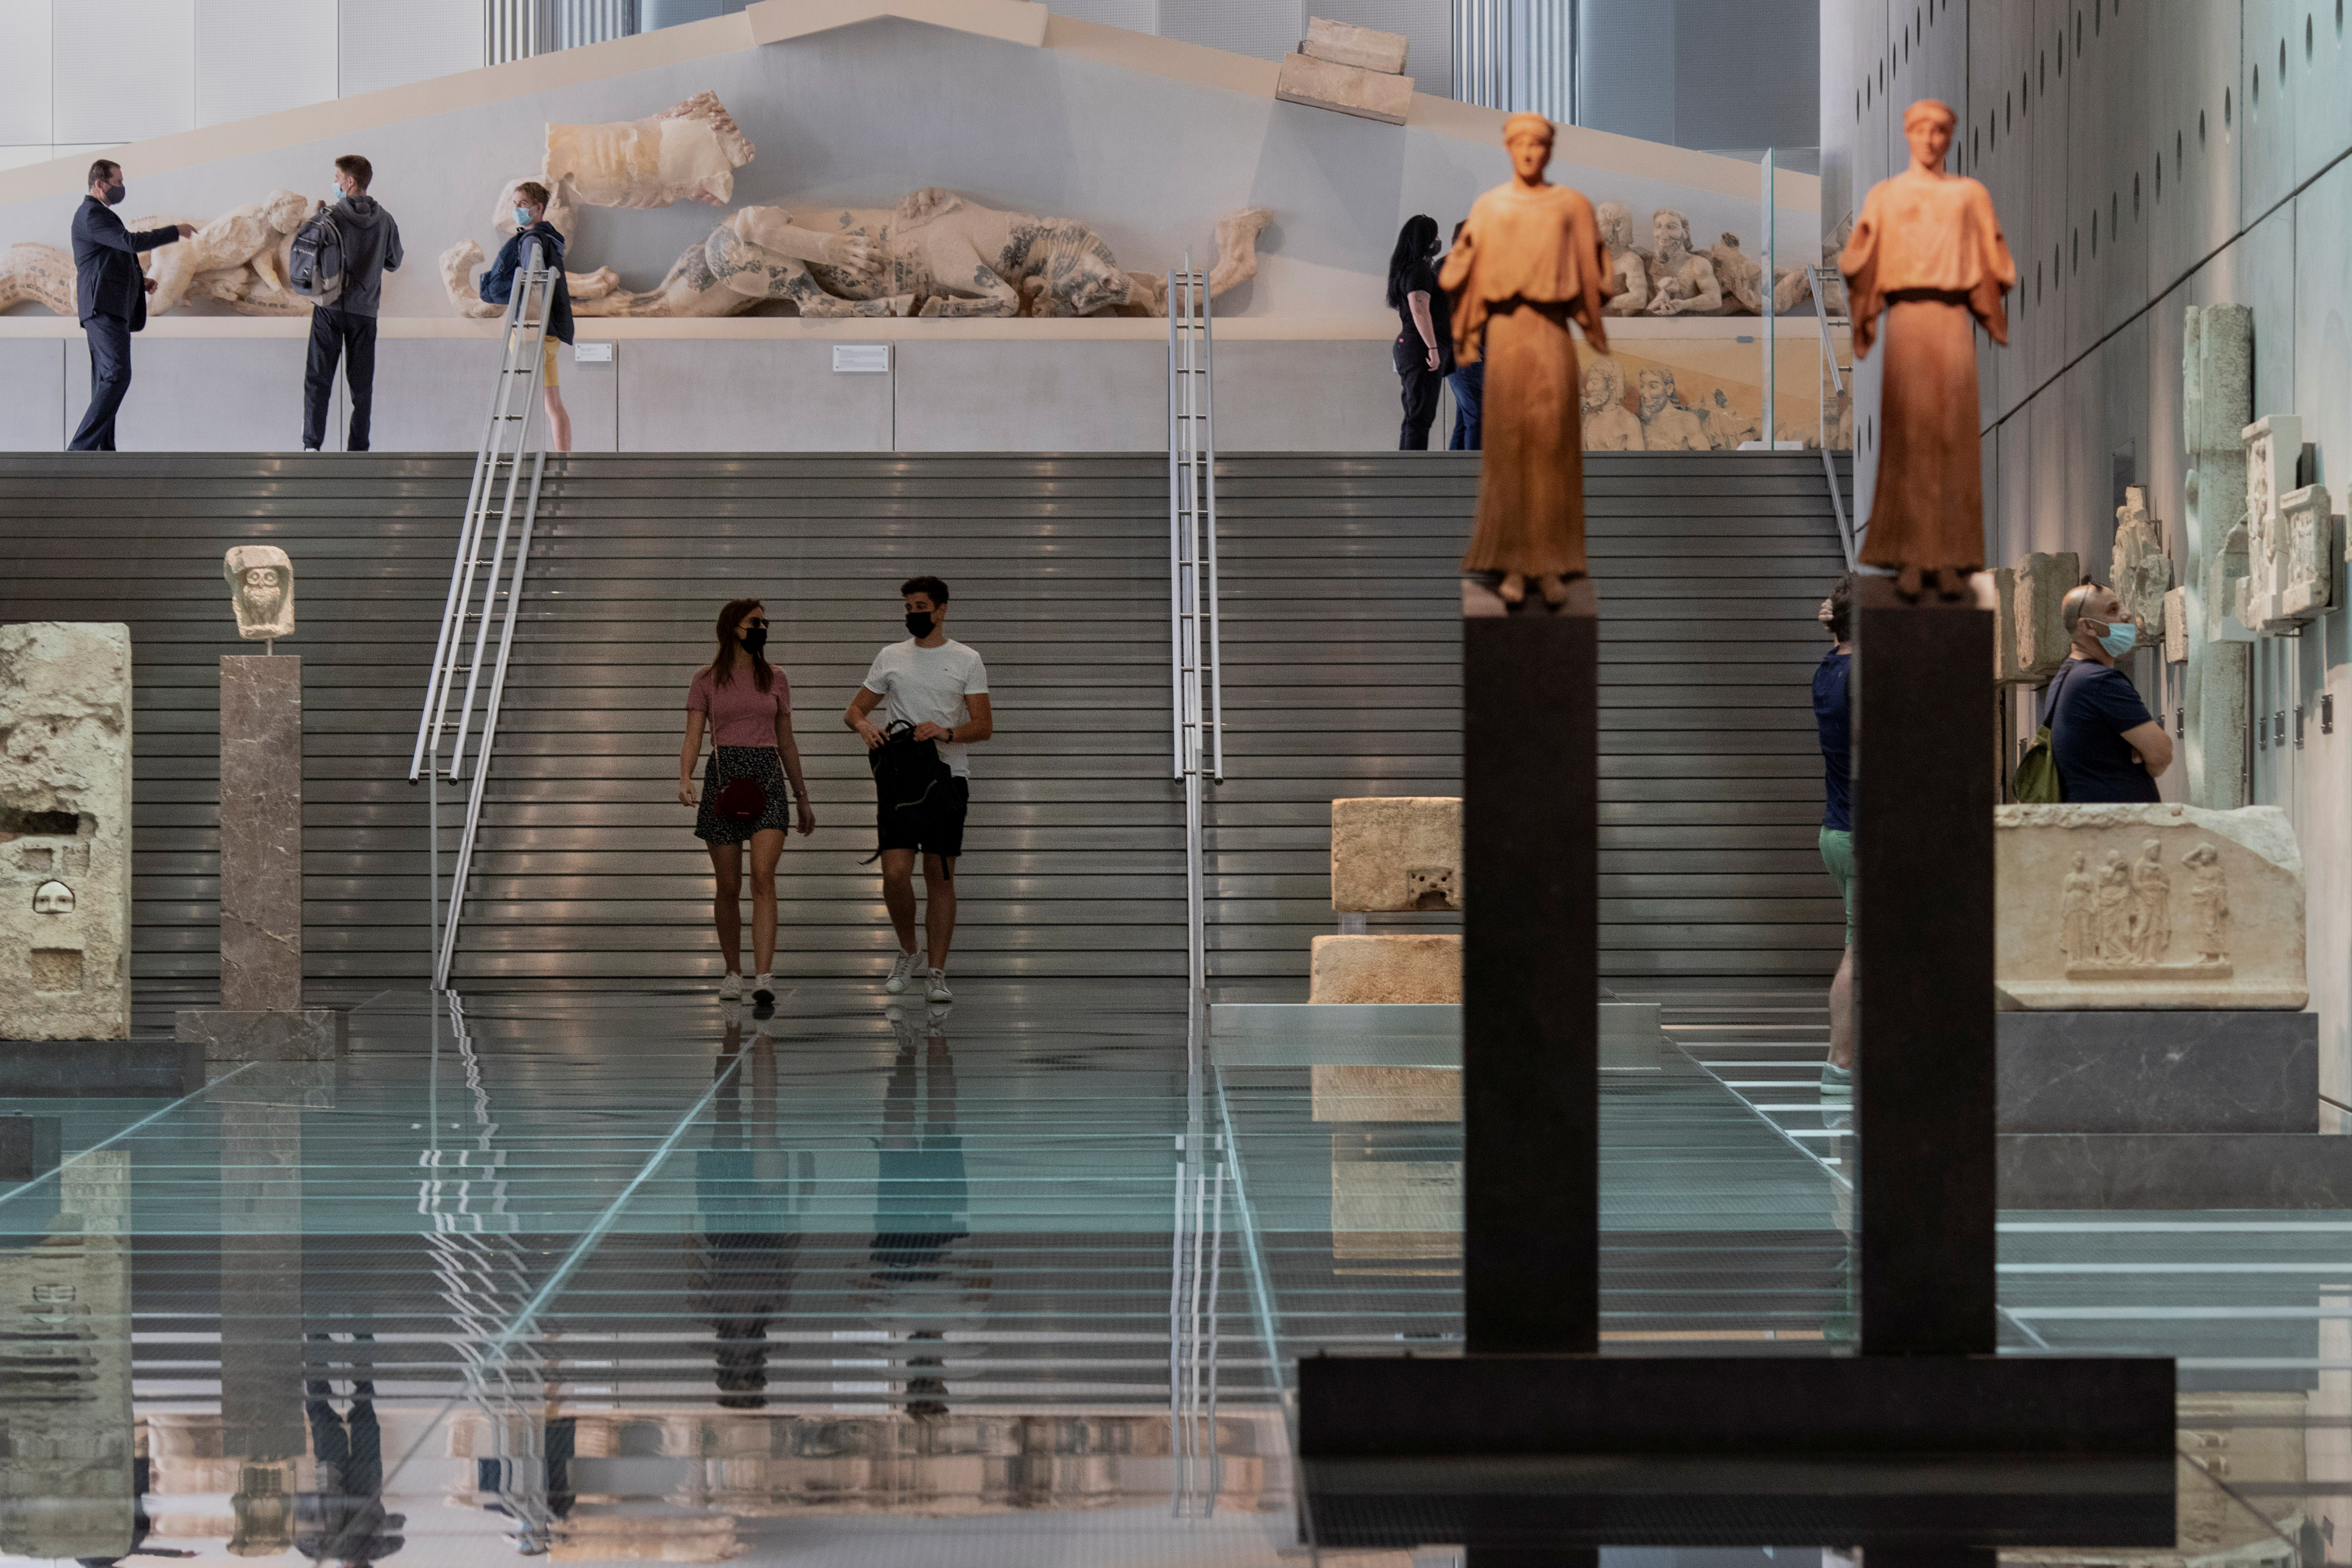 People visit the Acropolis Museum, as museums open following the easing of measures against the spread of the coronavirus disease (COVID-19), a day before the official opening of the tourism season, in Athens, Greece, May 14, 2021. REUTERS/Alkis Konstantinidis